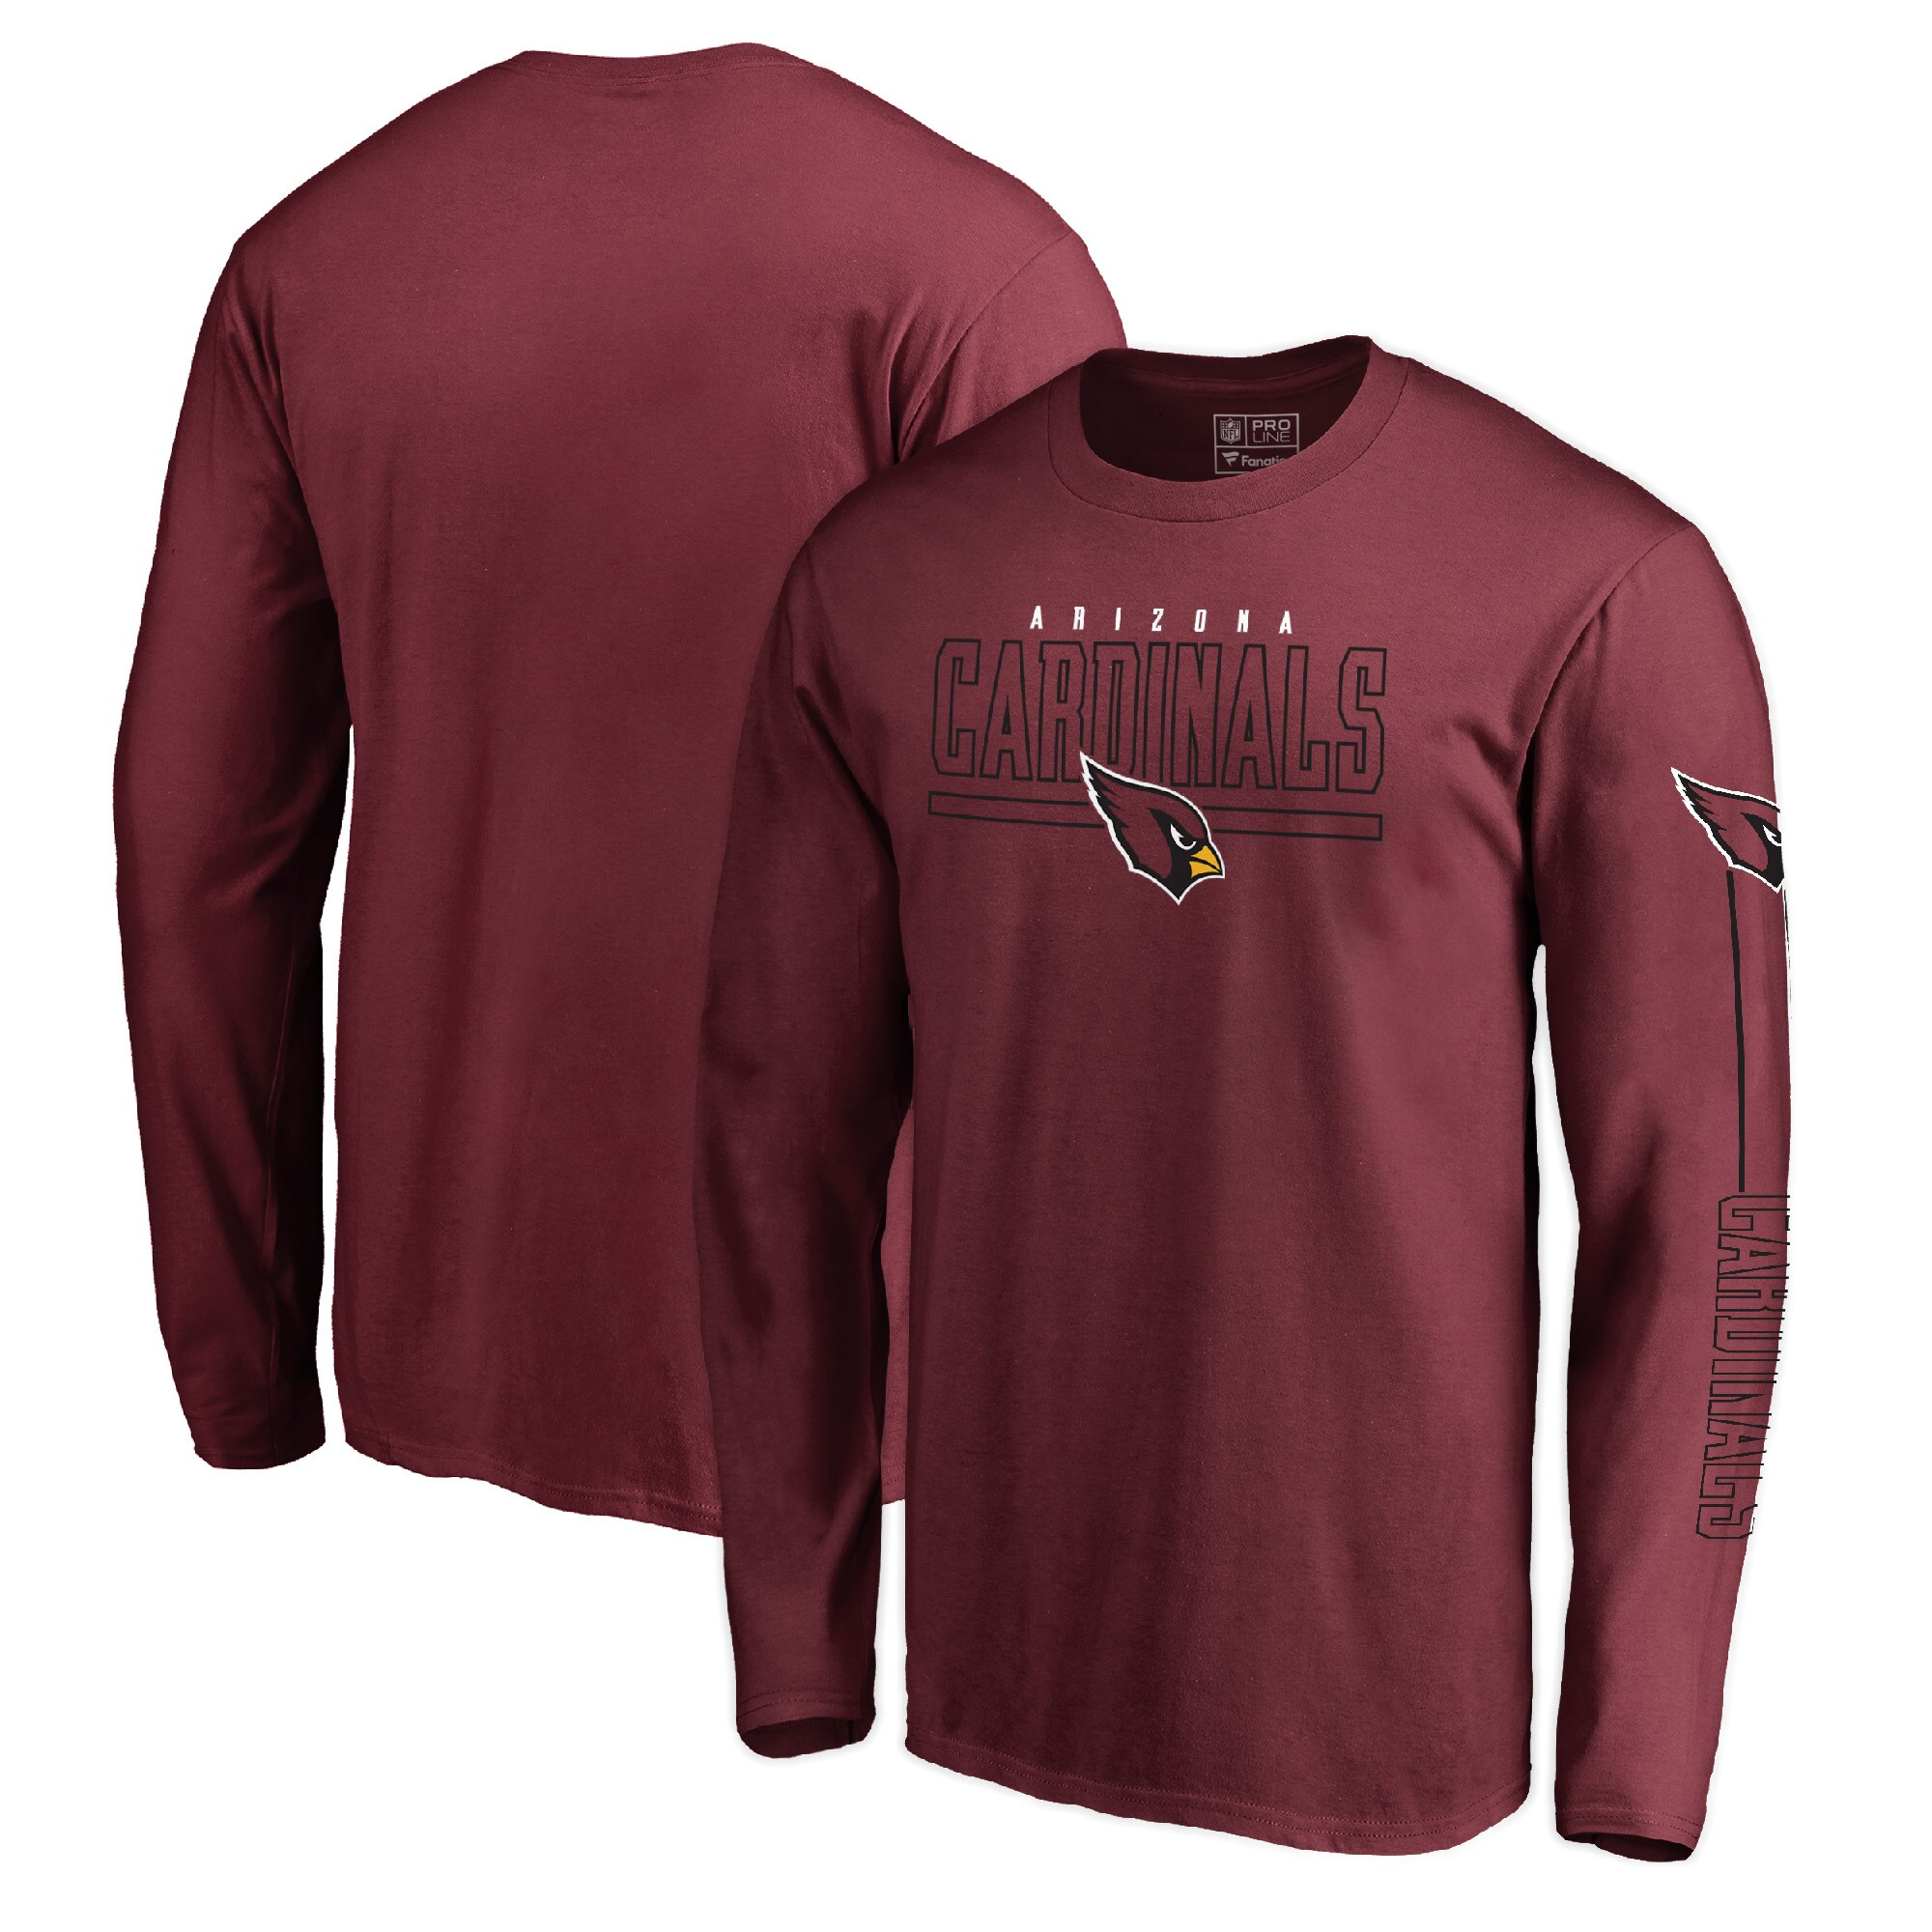 Arizona Cardinals NFL Pro Line by Fanatics Branded Front Line Long Sleeve T-Shirt - Cardinal